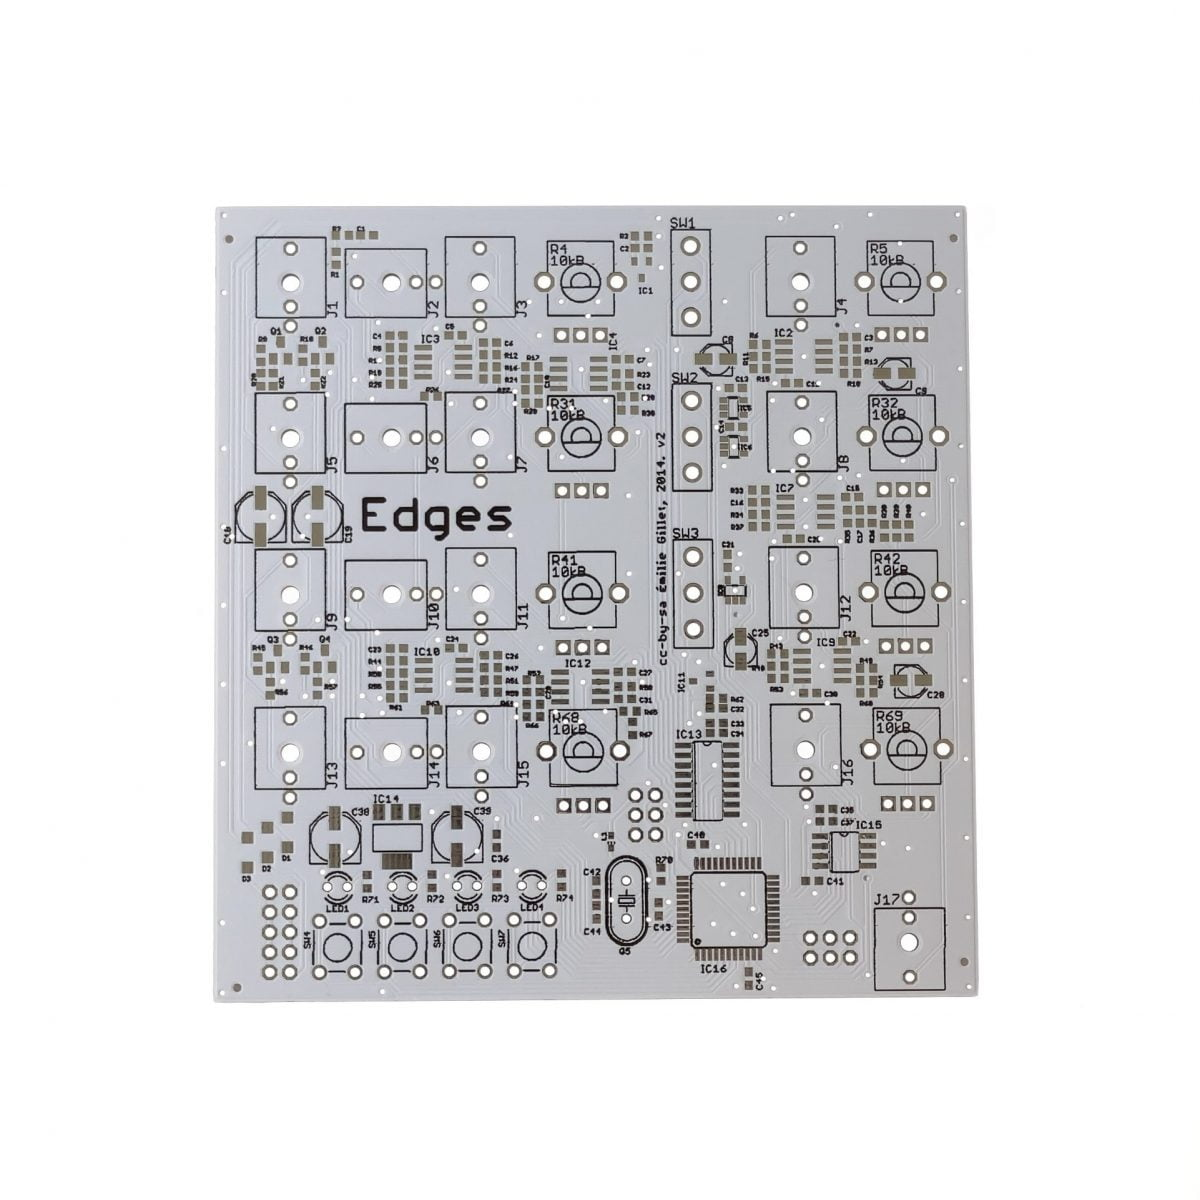 Mutated Edges PCB Front